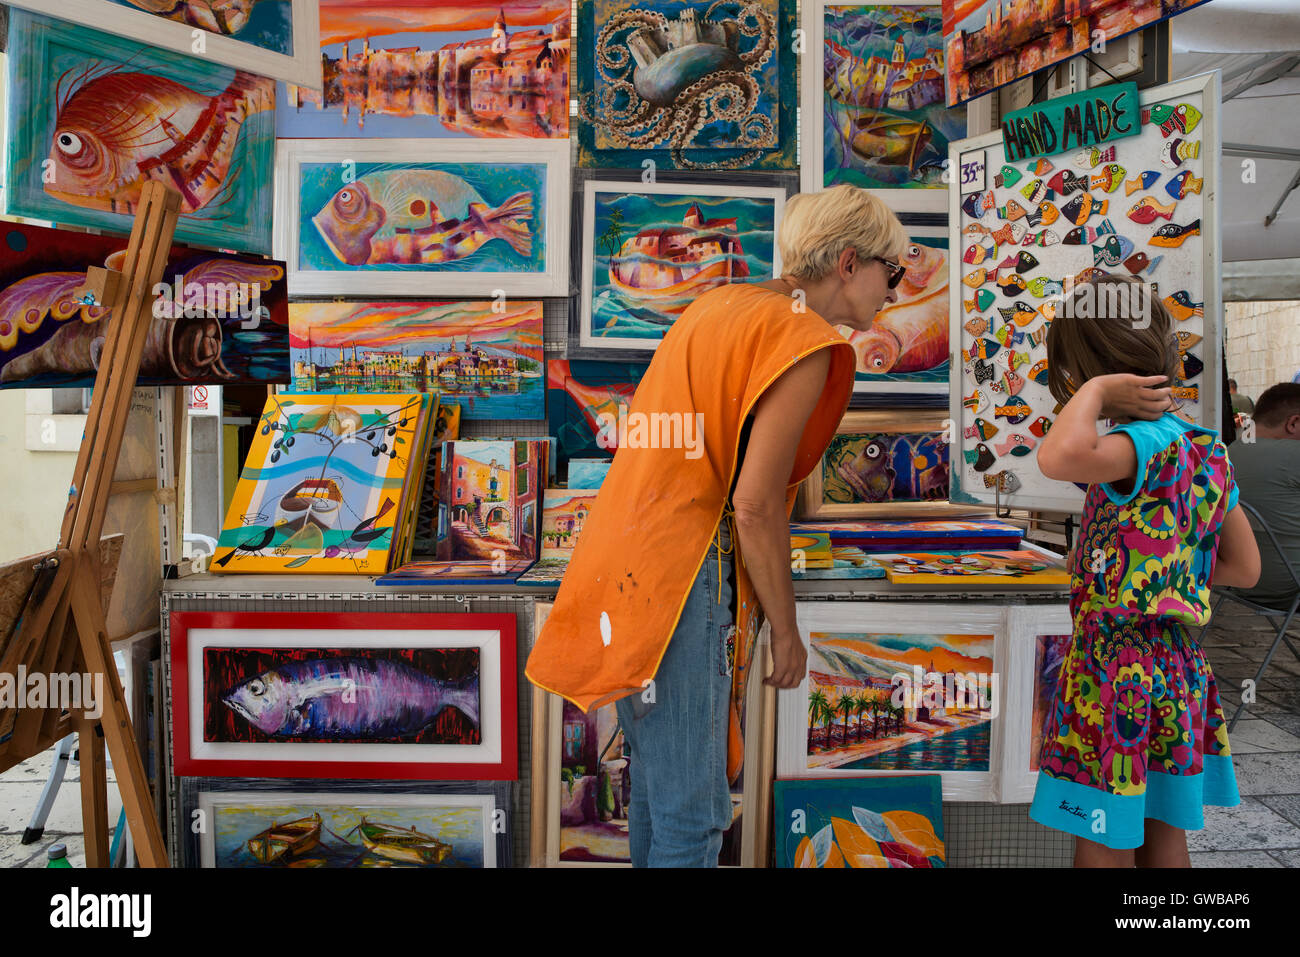 A female tourist choosing a gift at the souvenir shop of a local painter who sells canvases with marine motifs. - Stock Image